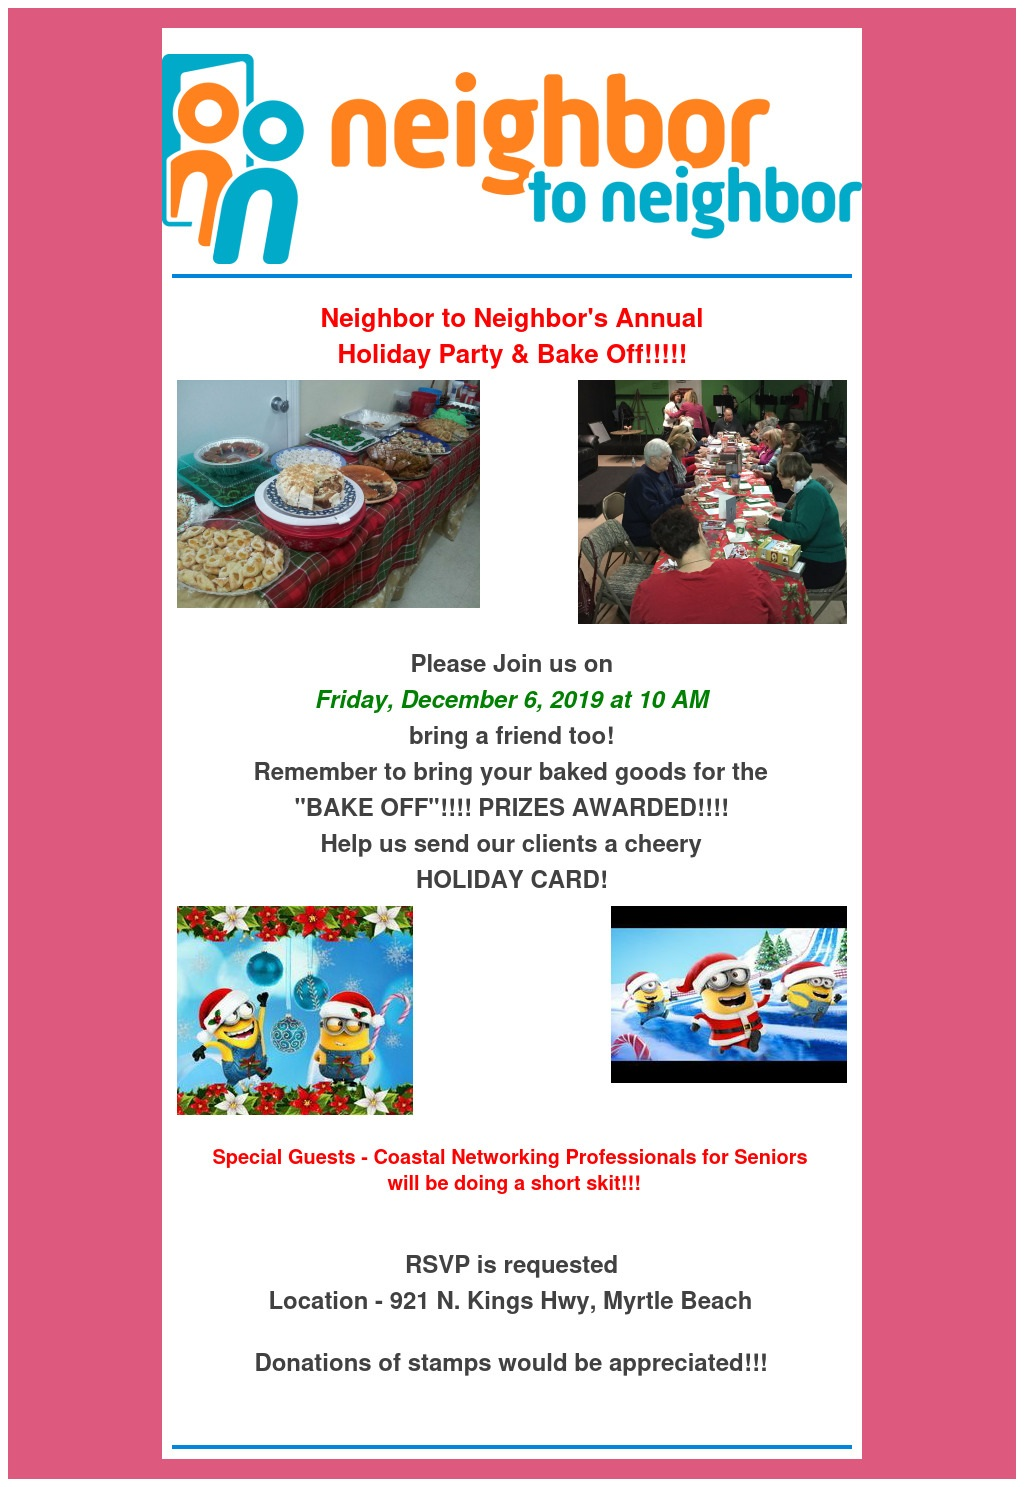 Neighbor to Neighbor Annual Holiday Party & Bake Off